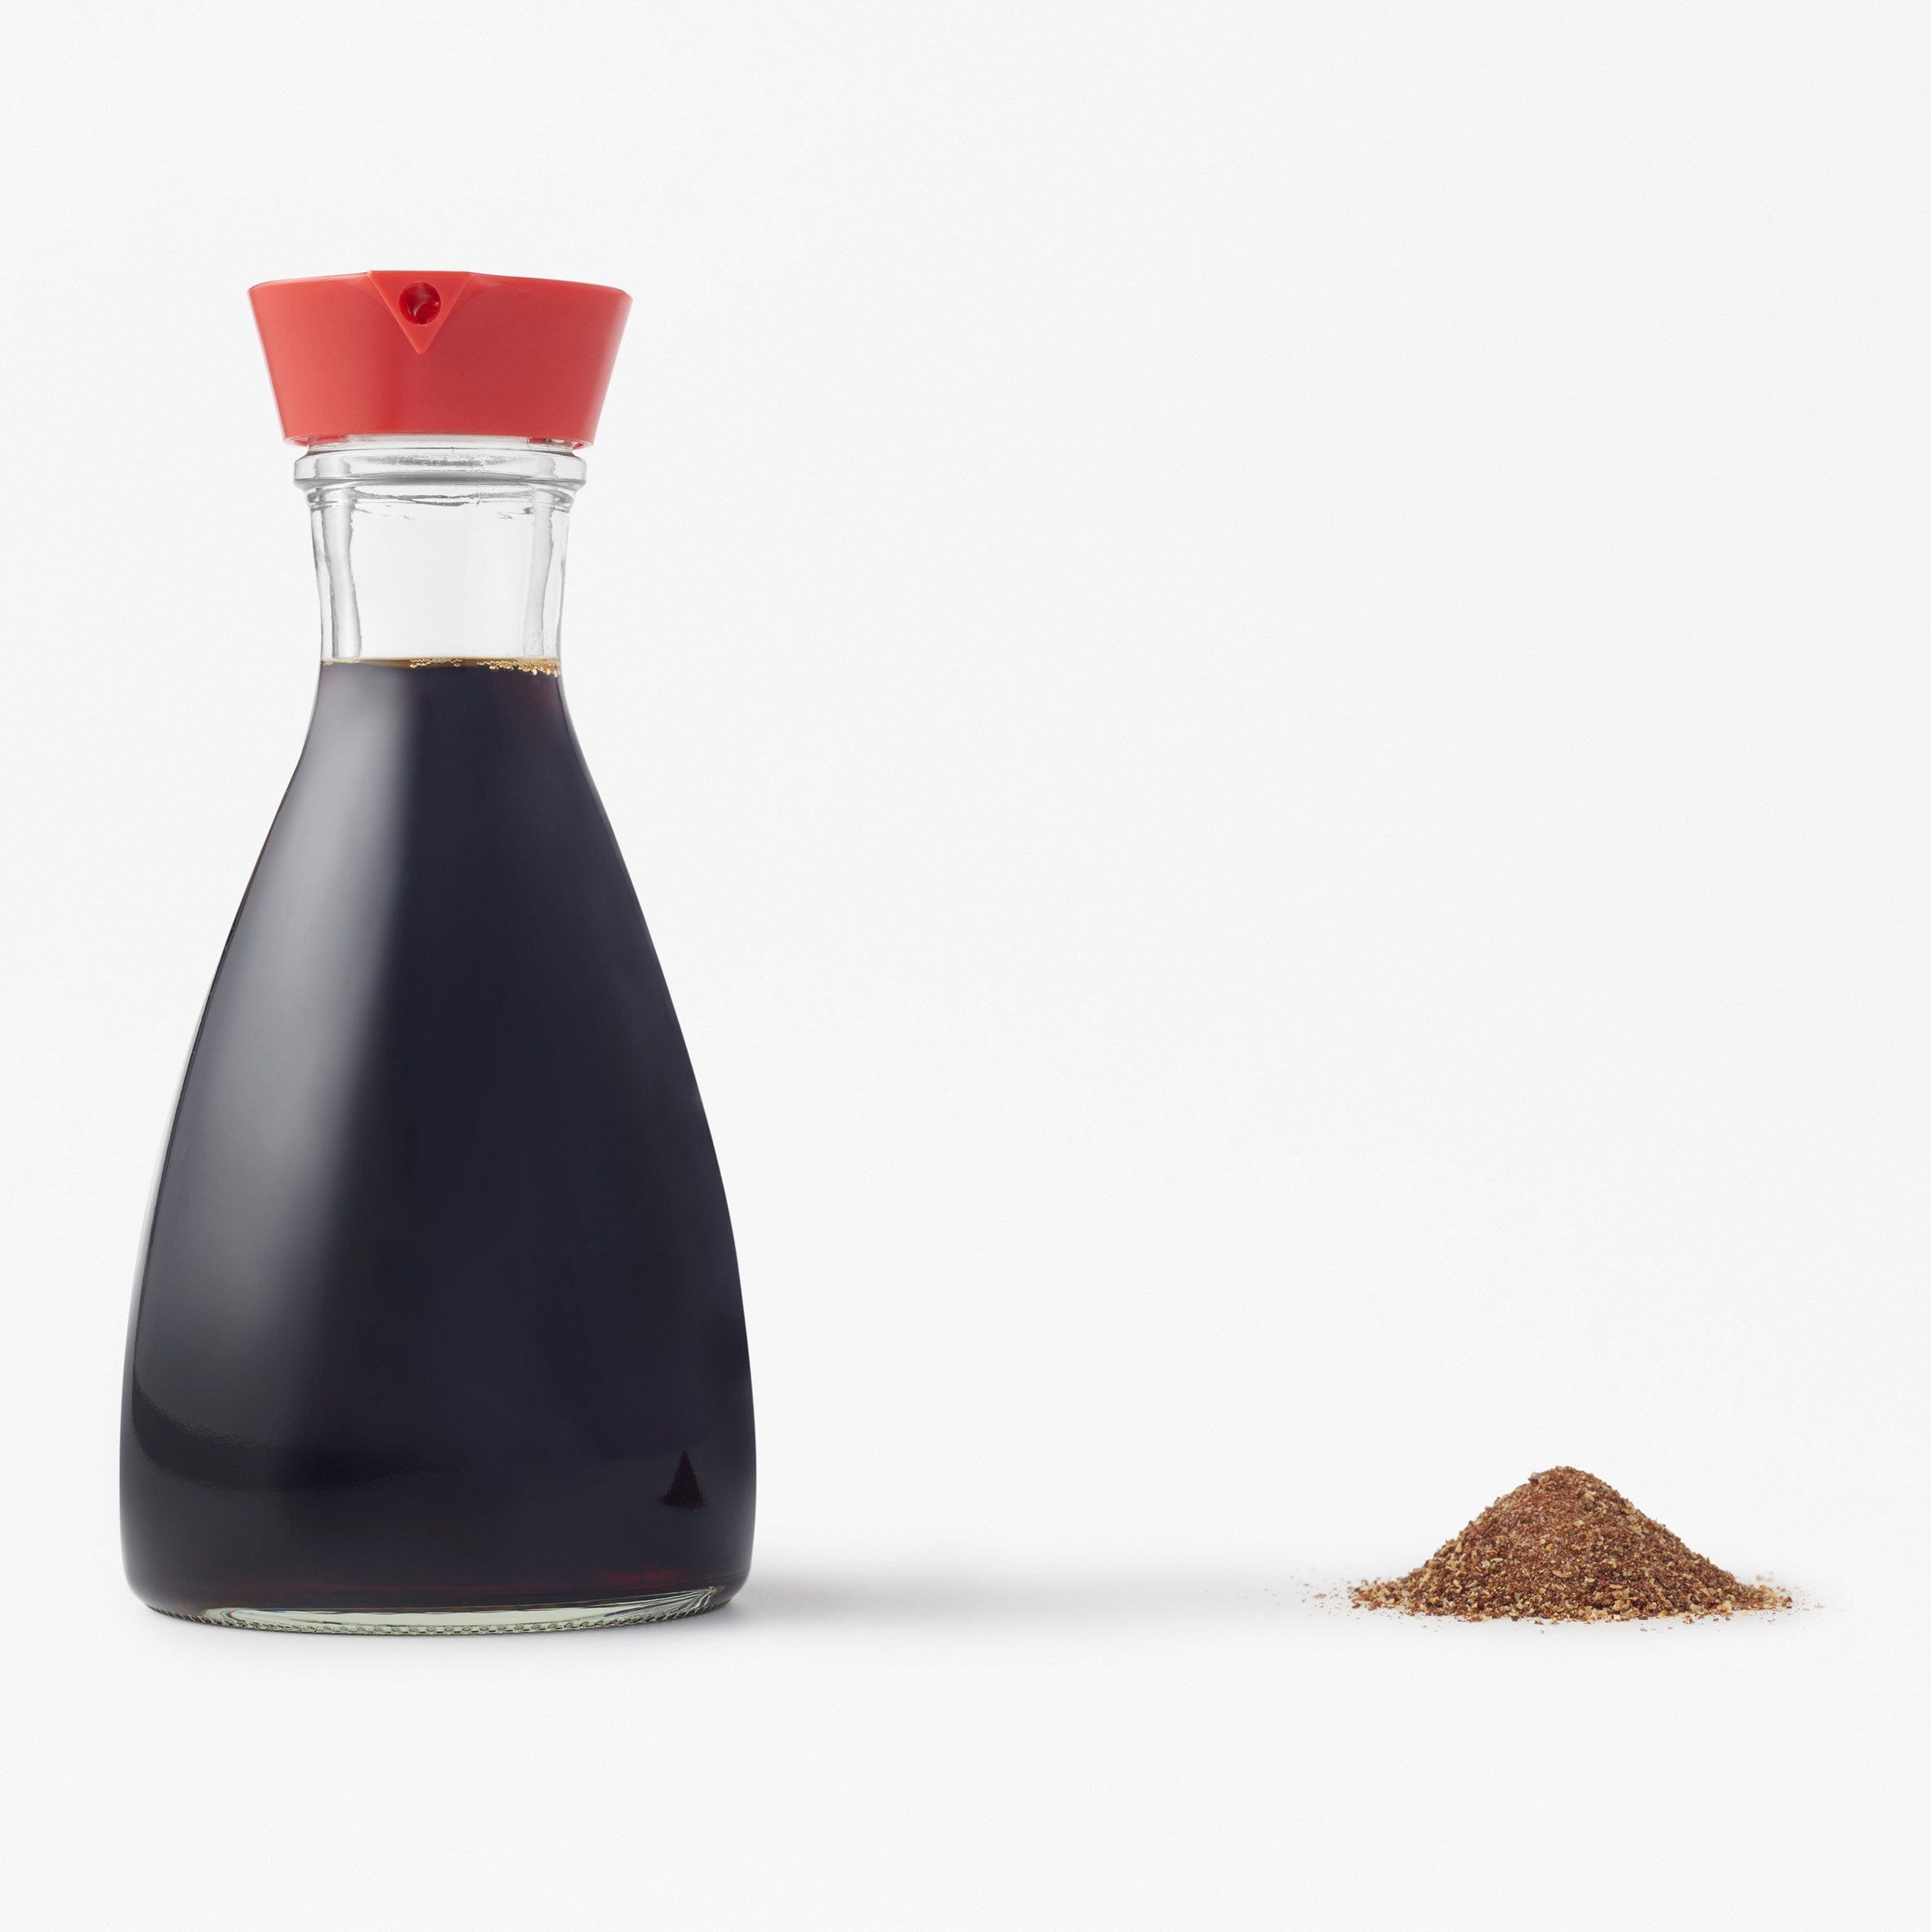 Nendo designs soy seasoning dispenser to rival iconic Kikkoman bottle